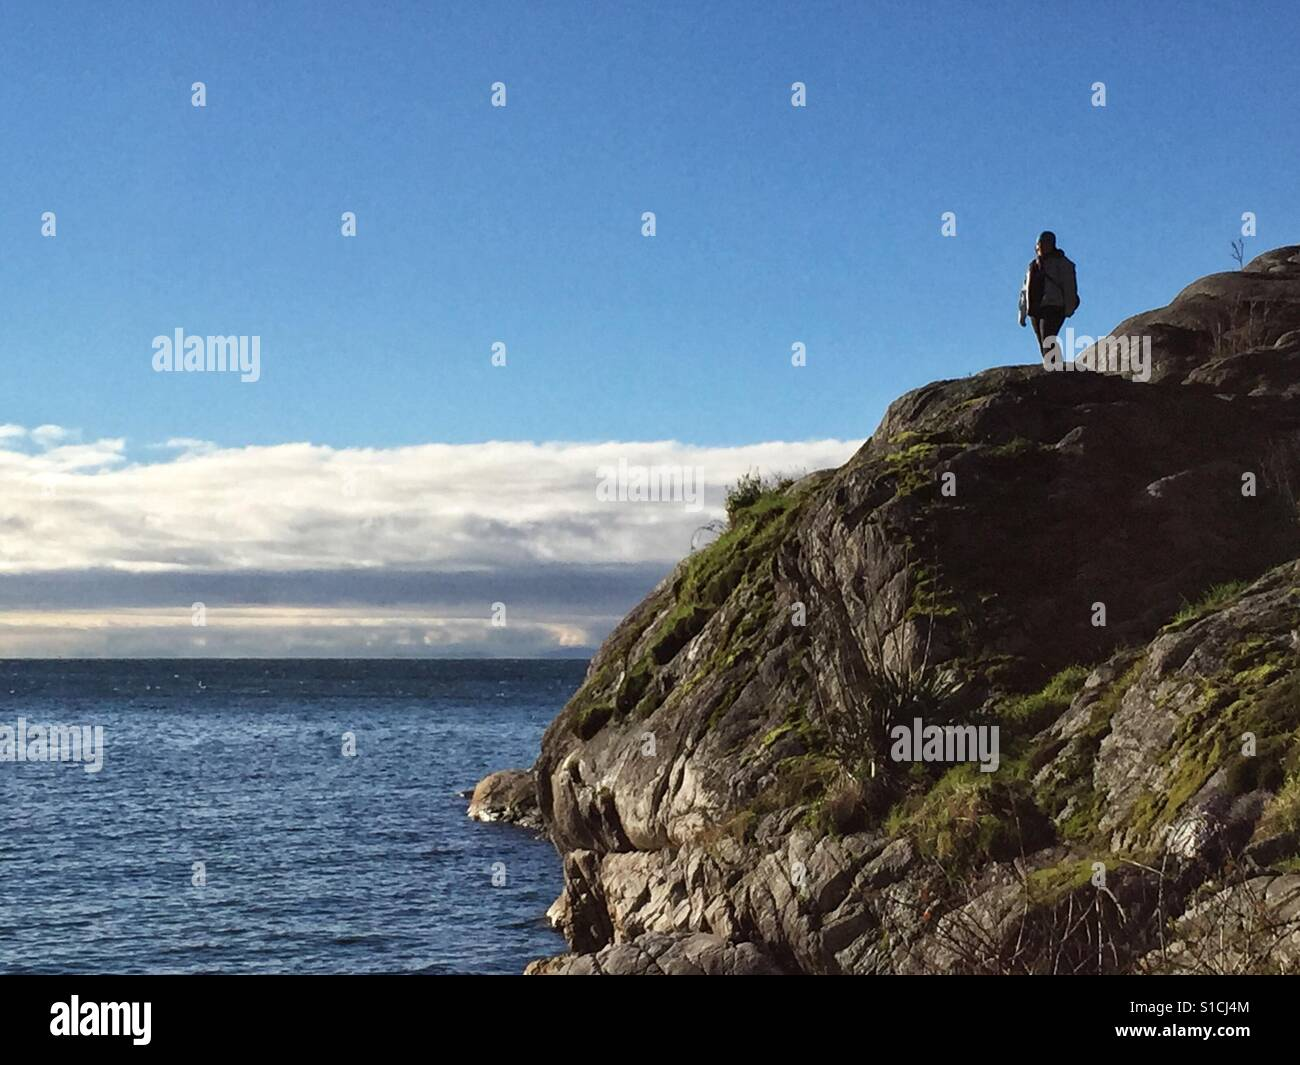 Solitary person at the edge on a cliff next to the sea, looking at the marine landscape. Stock Foto